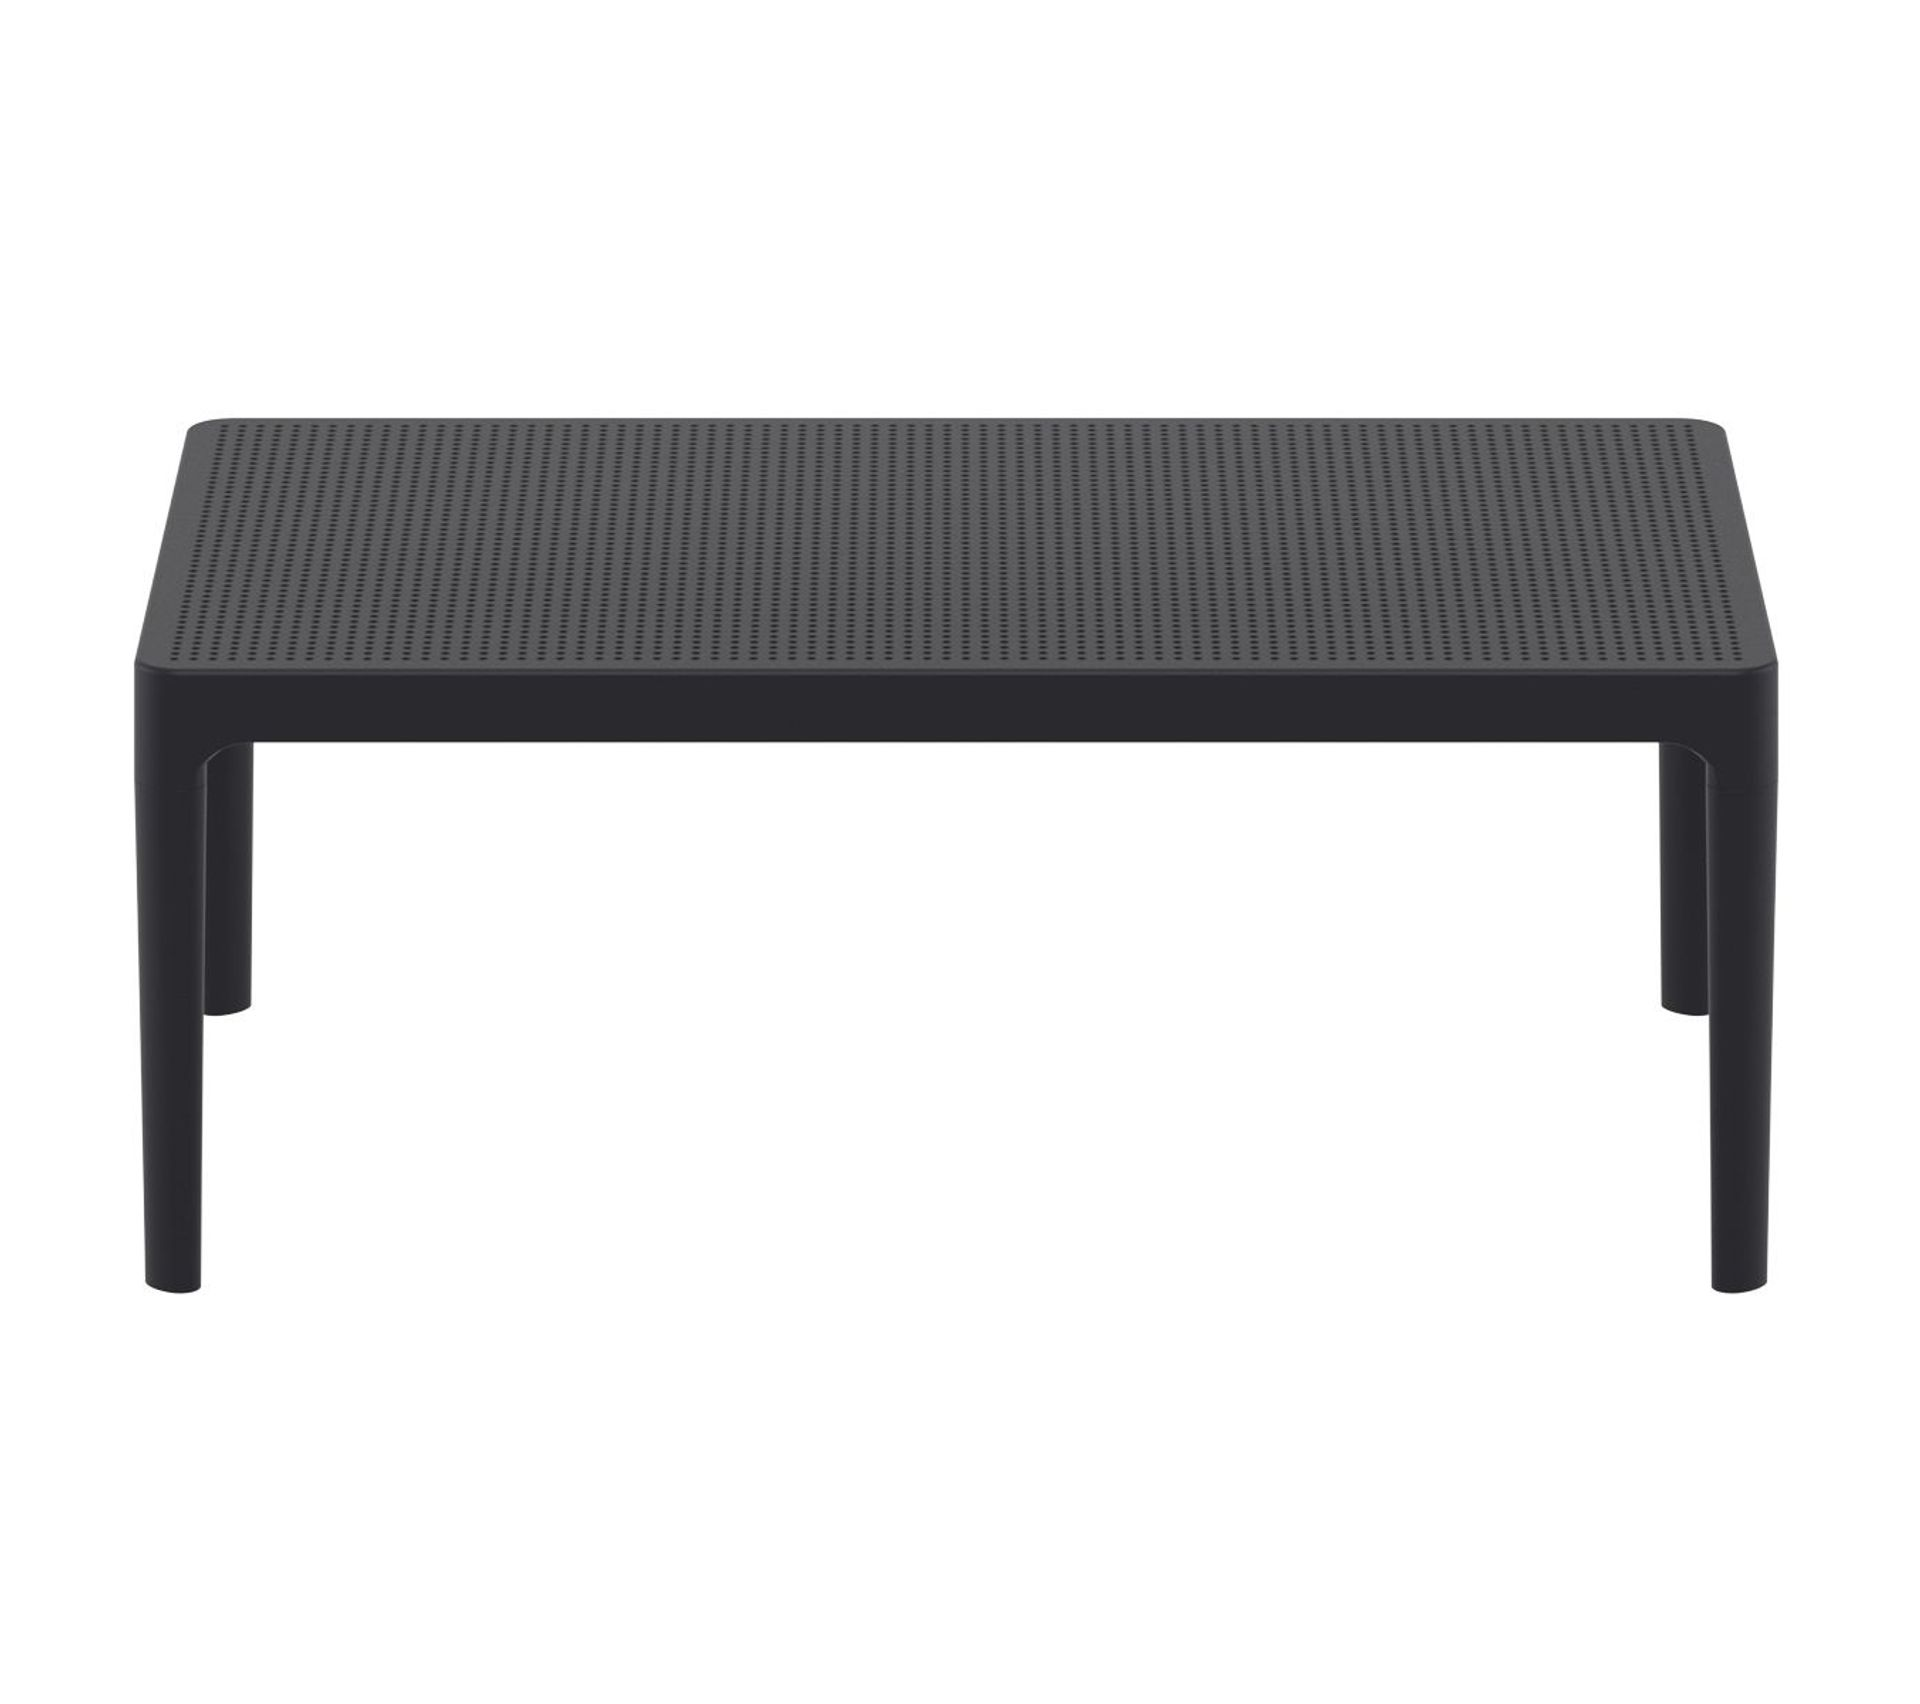 Table Basse Design Interieur Exterieur Noir Oskol Table De